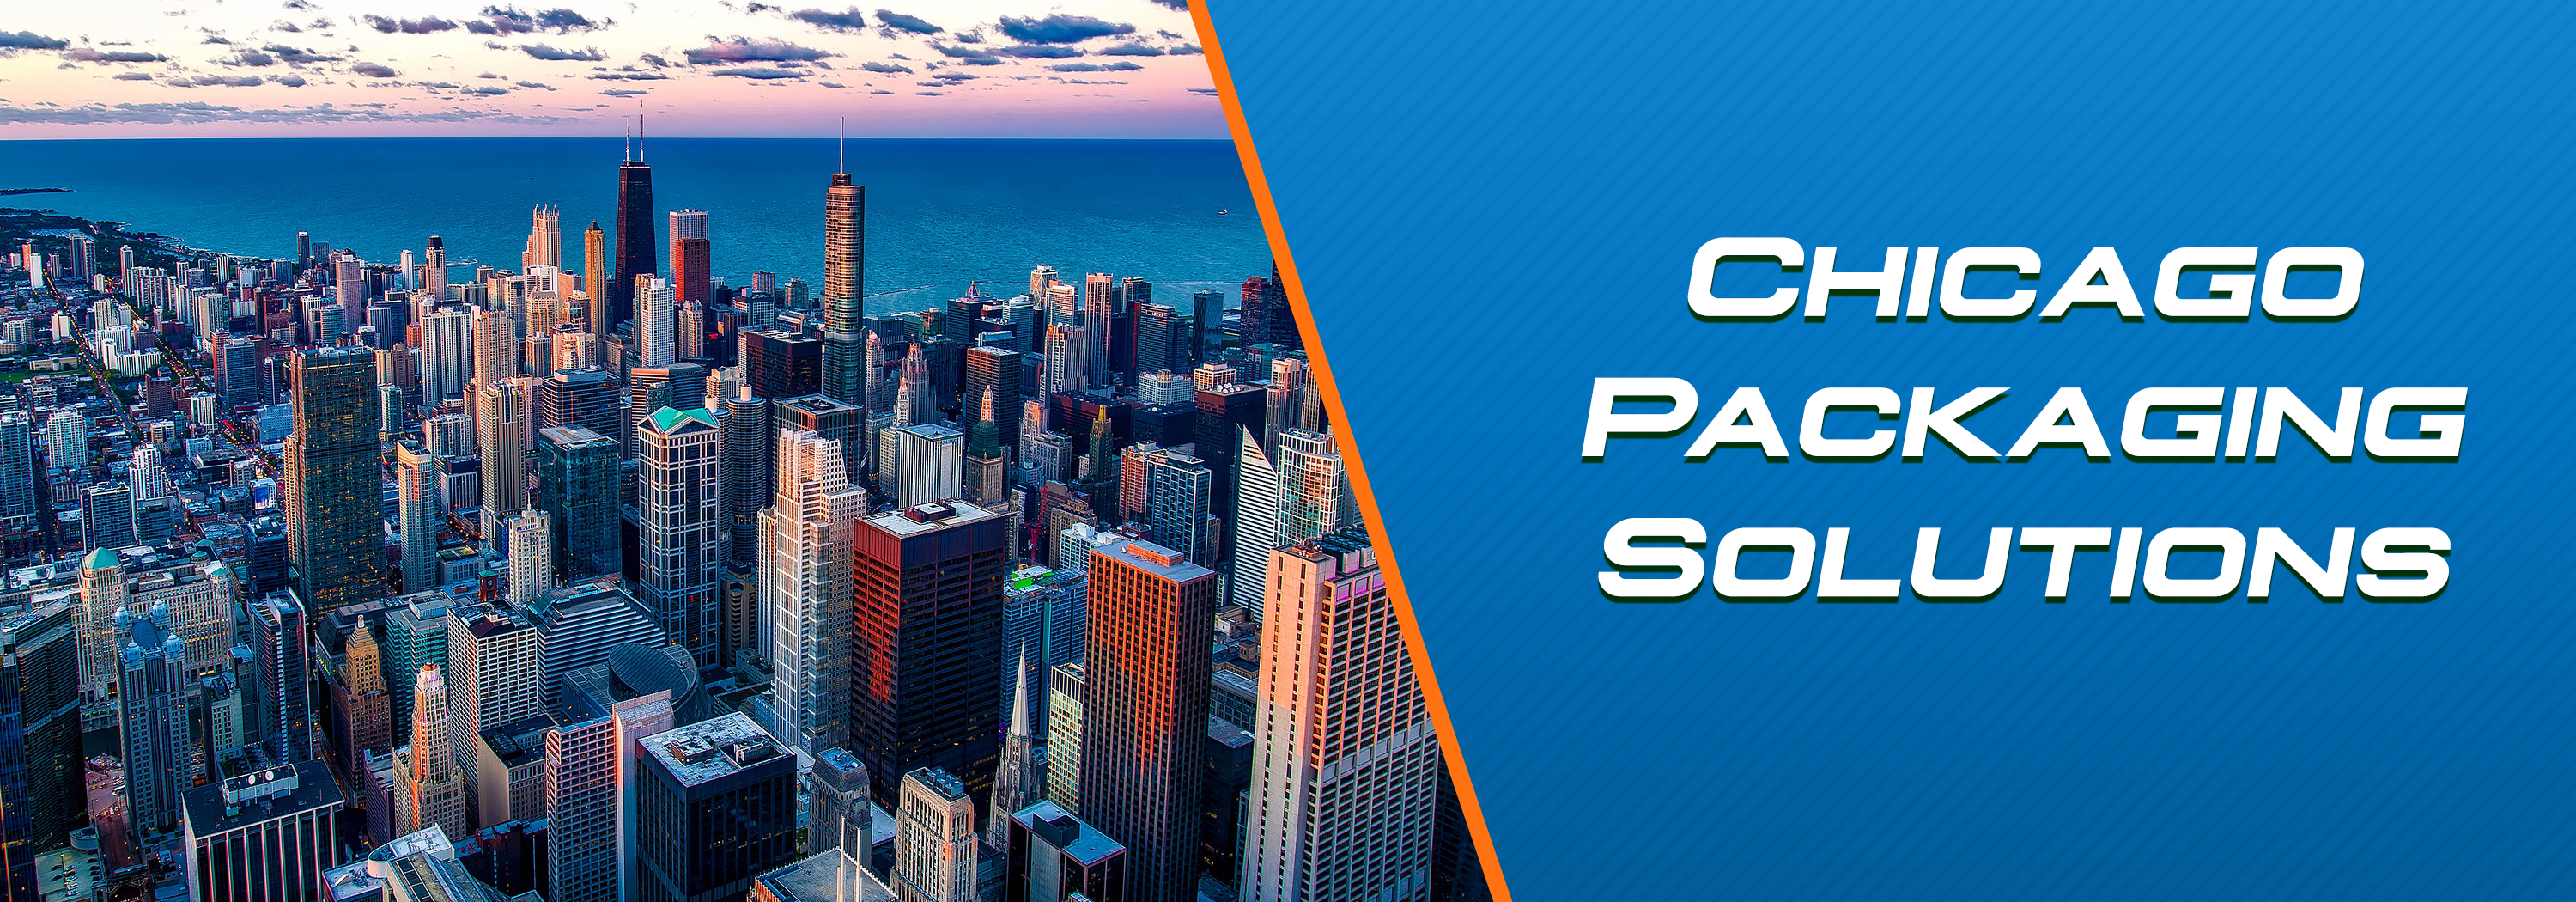 Chicago Packaging Solutions